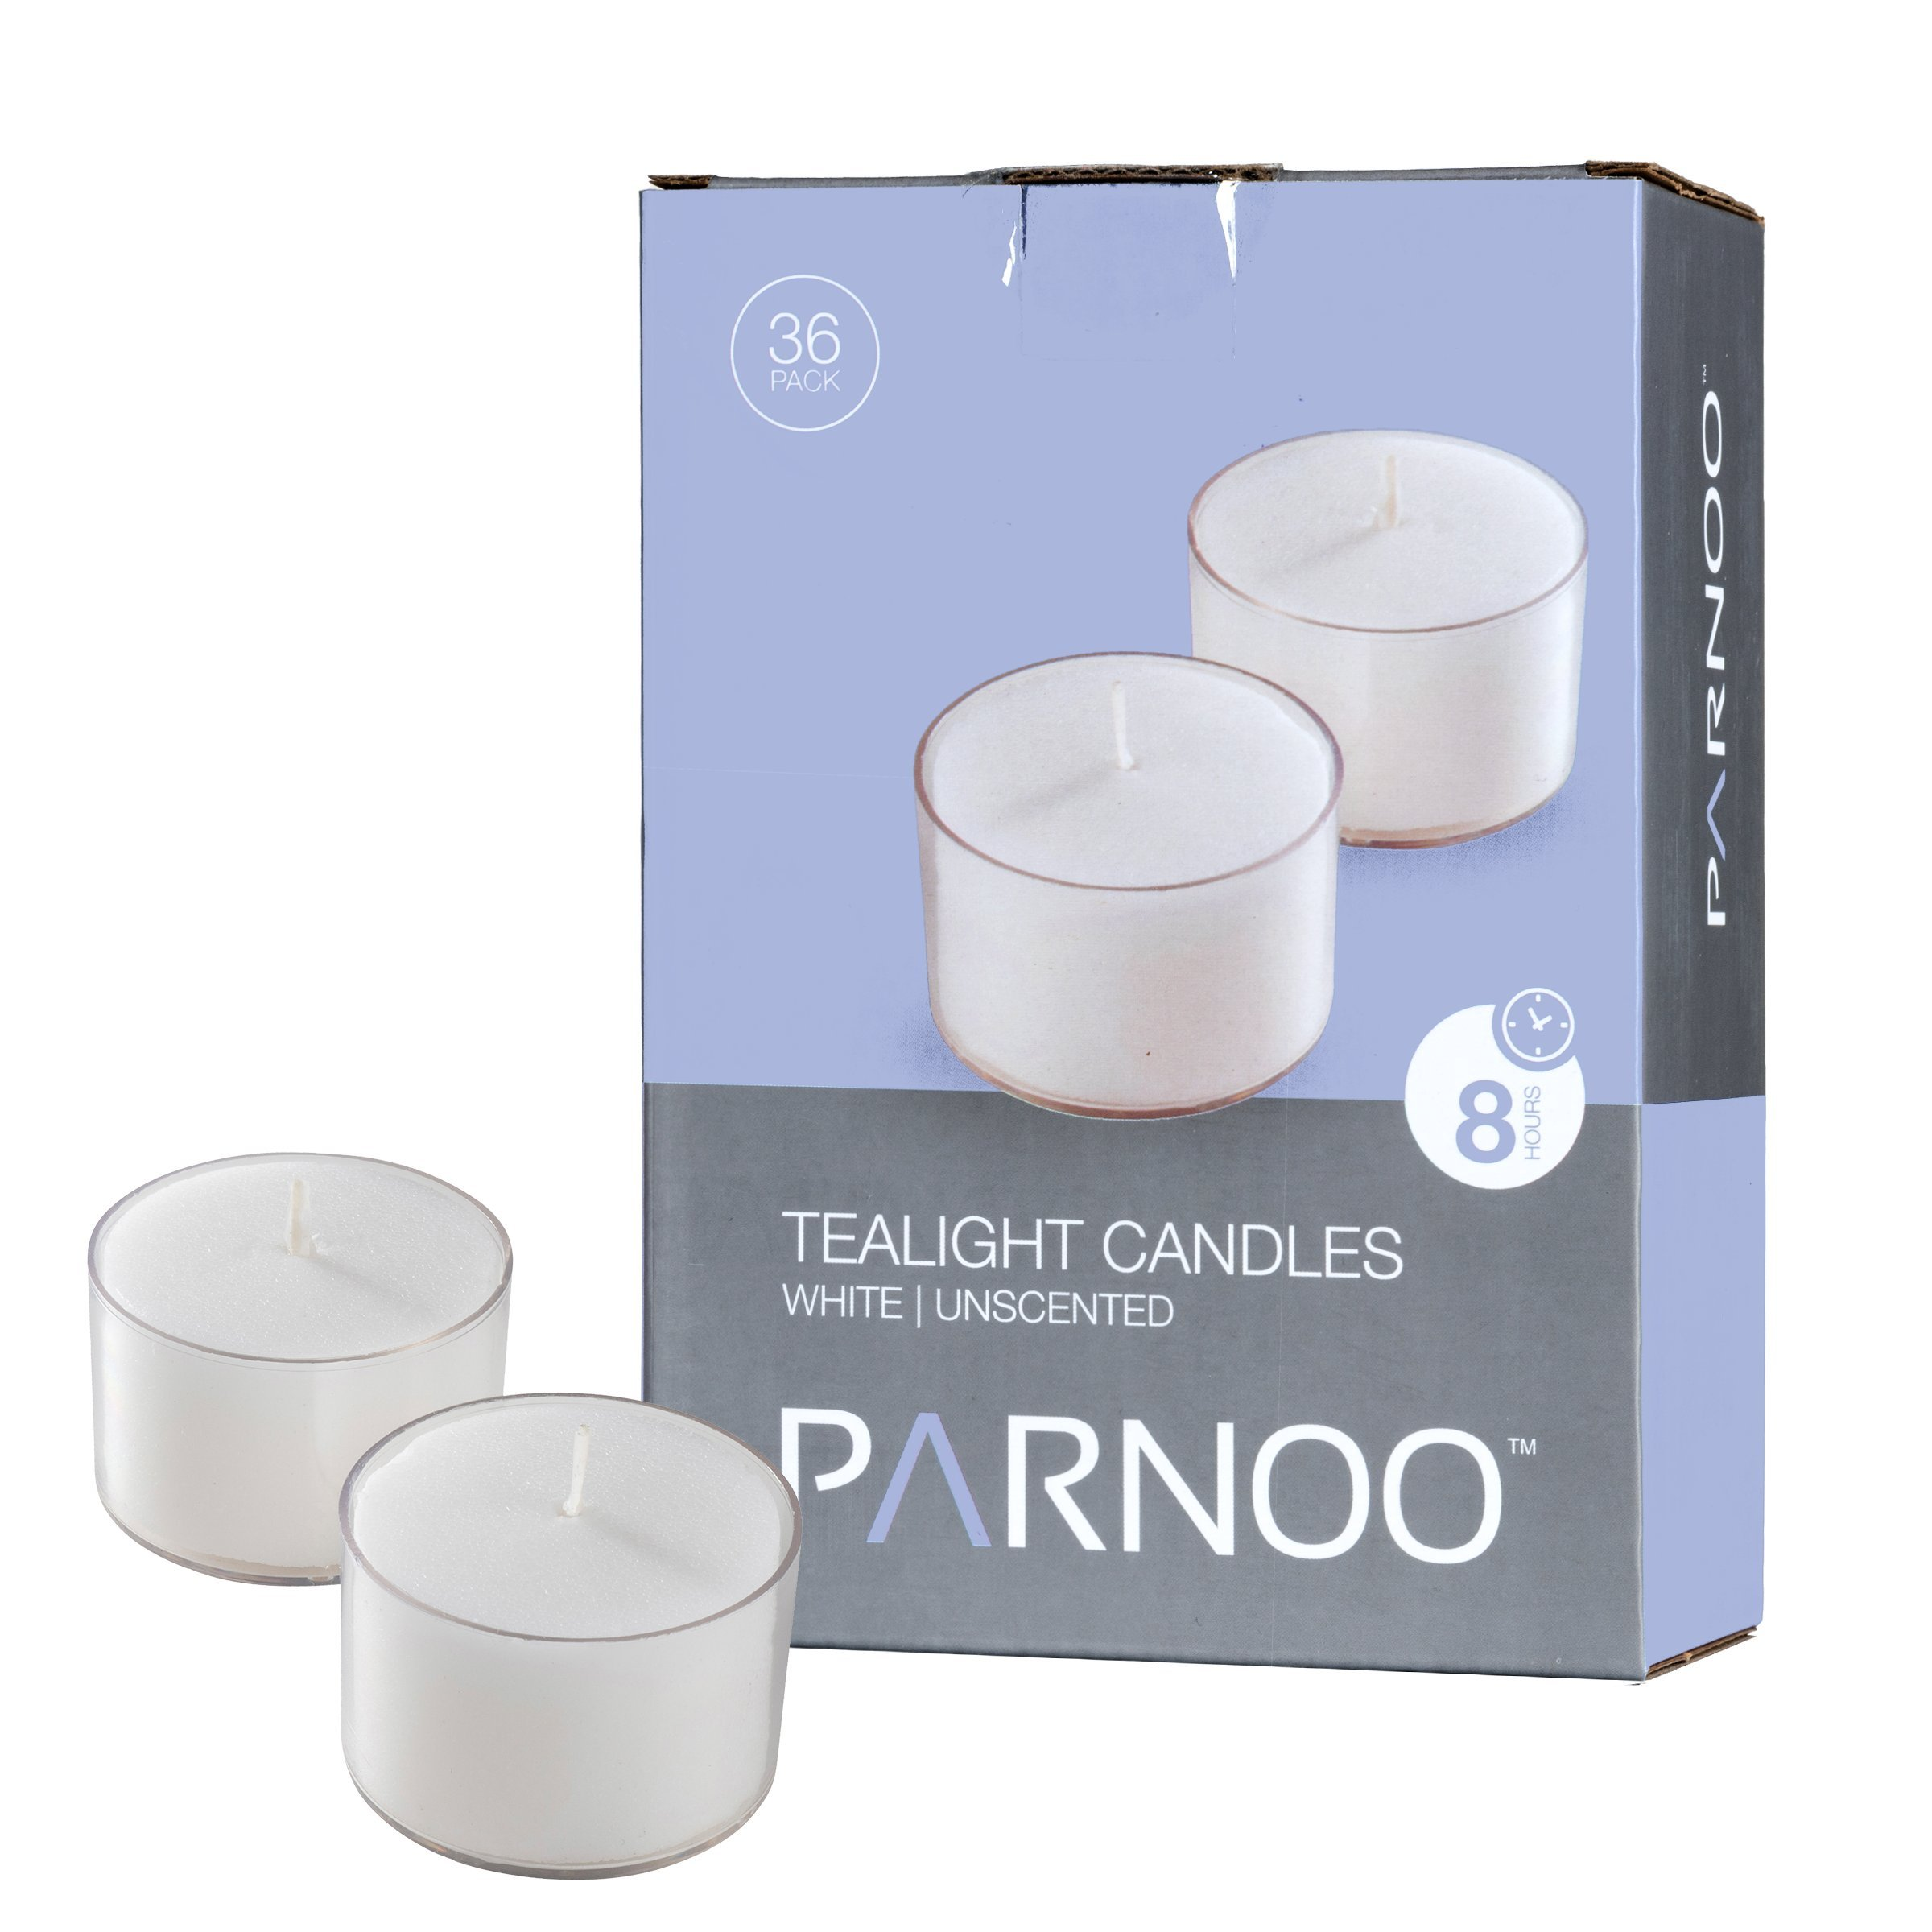 White Tealight Candles with Clear Cup - Set of 36 Unscented Tea Lights - 8 Hour Burn Time